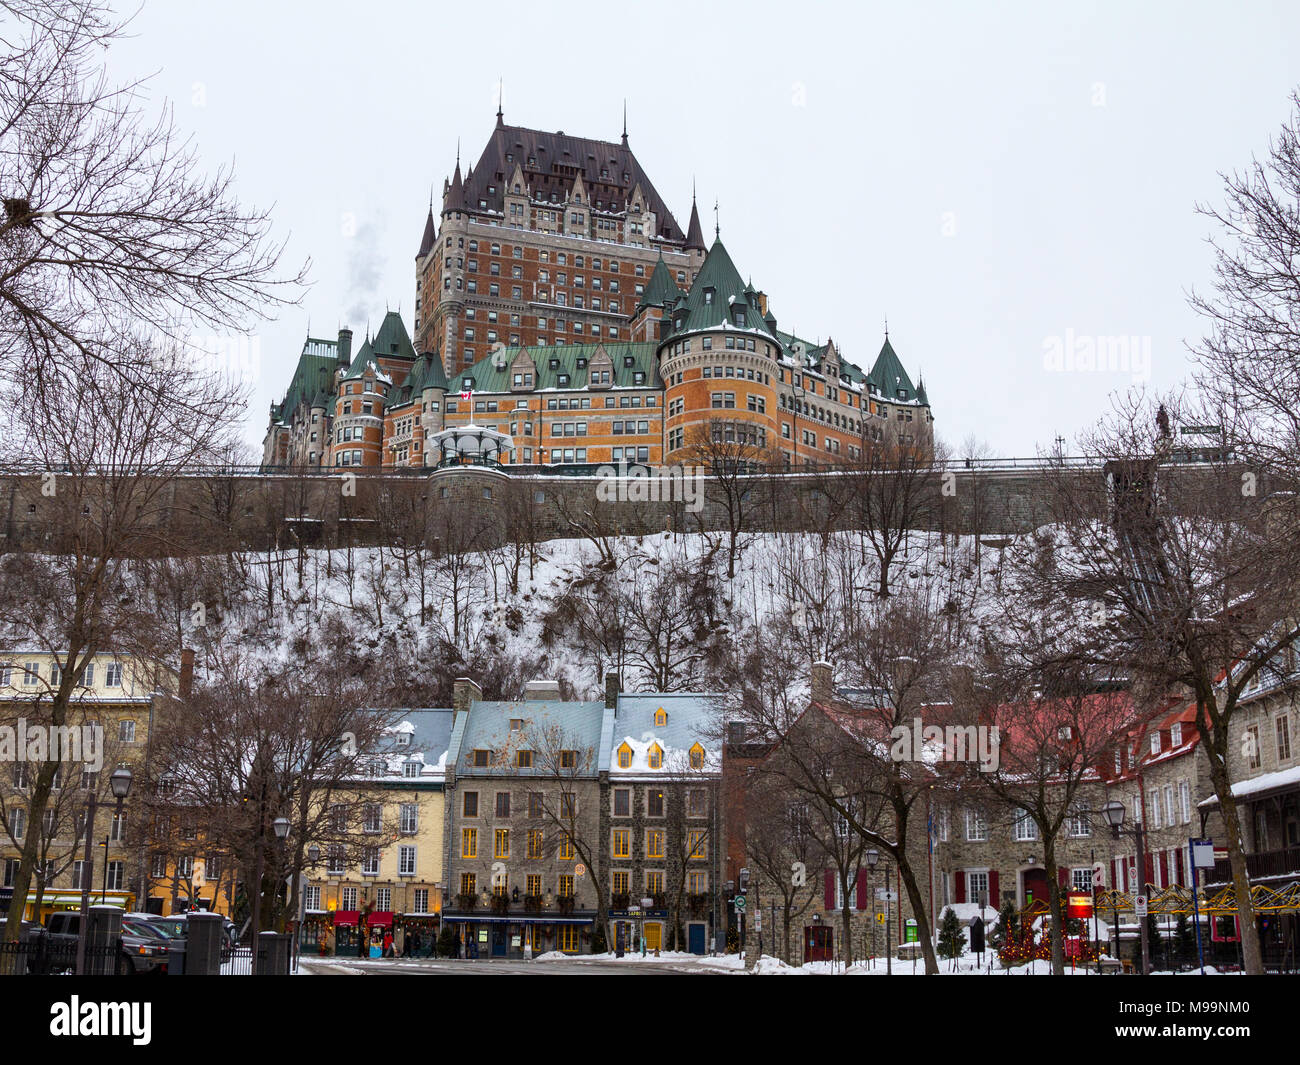 QUEBEC, CANADA - DECEMBER 26, 2016: View of Frontenac Castel (Chateau de Frontenac, in French) in winter under the snow. The Château Frontenac is a gr - Stock Image